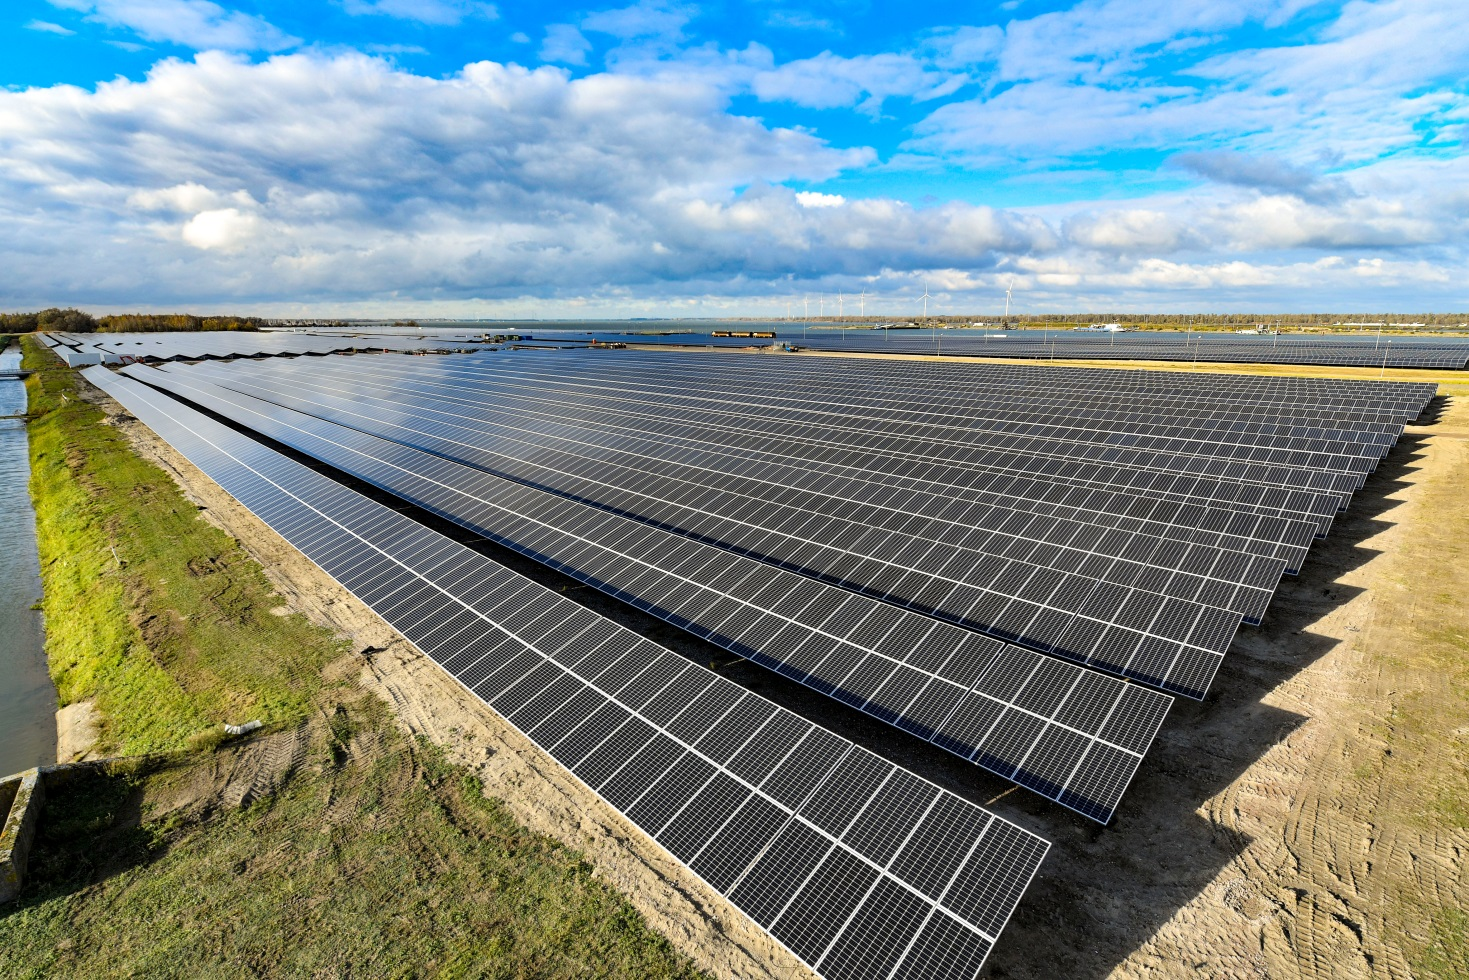 Mercom's latest report has highlighted more than 12GW of solar projects had been acquired in the first quarter of 2020, compared to 5.9GW in the prior year period. Image: Suntech